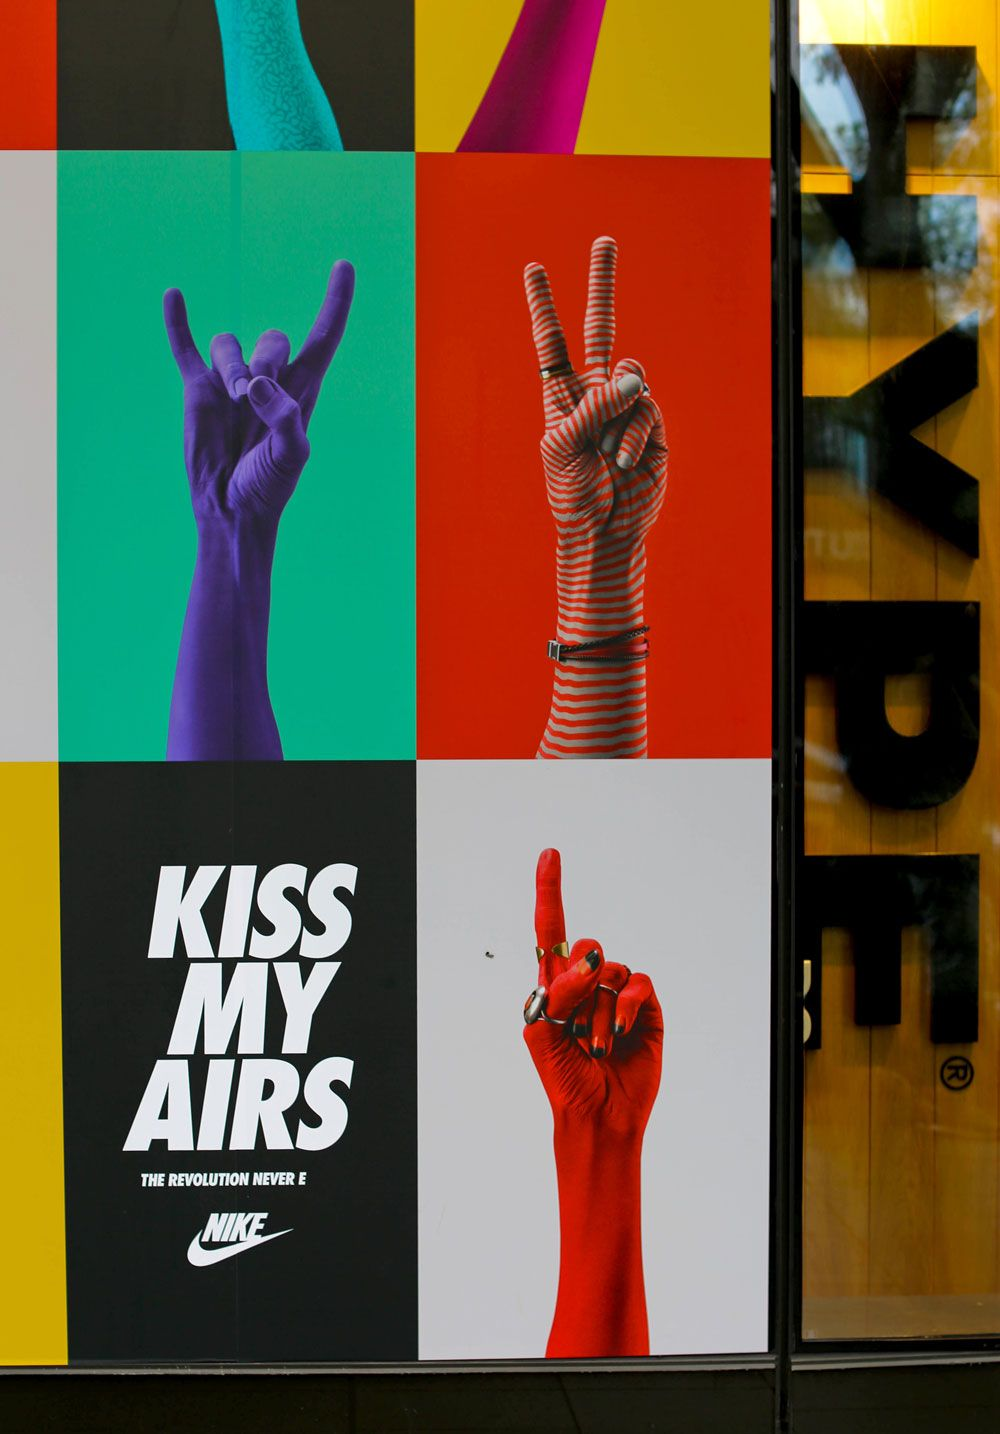 Nike Kiss My Airs Campaign by Collins — The Brand Identity